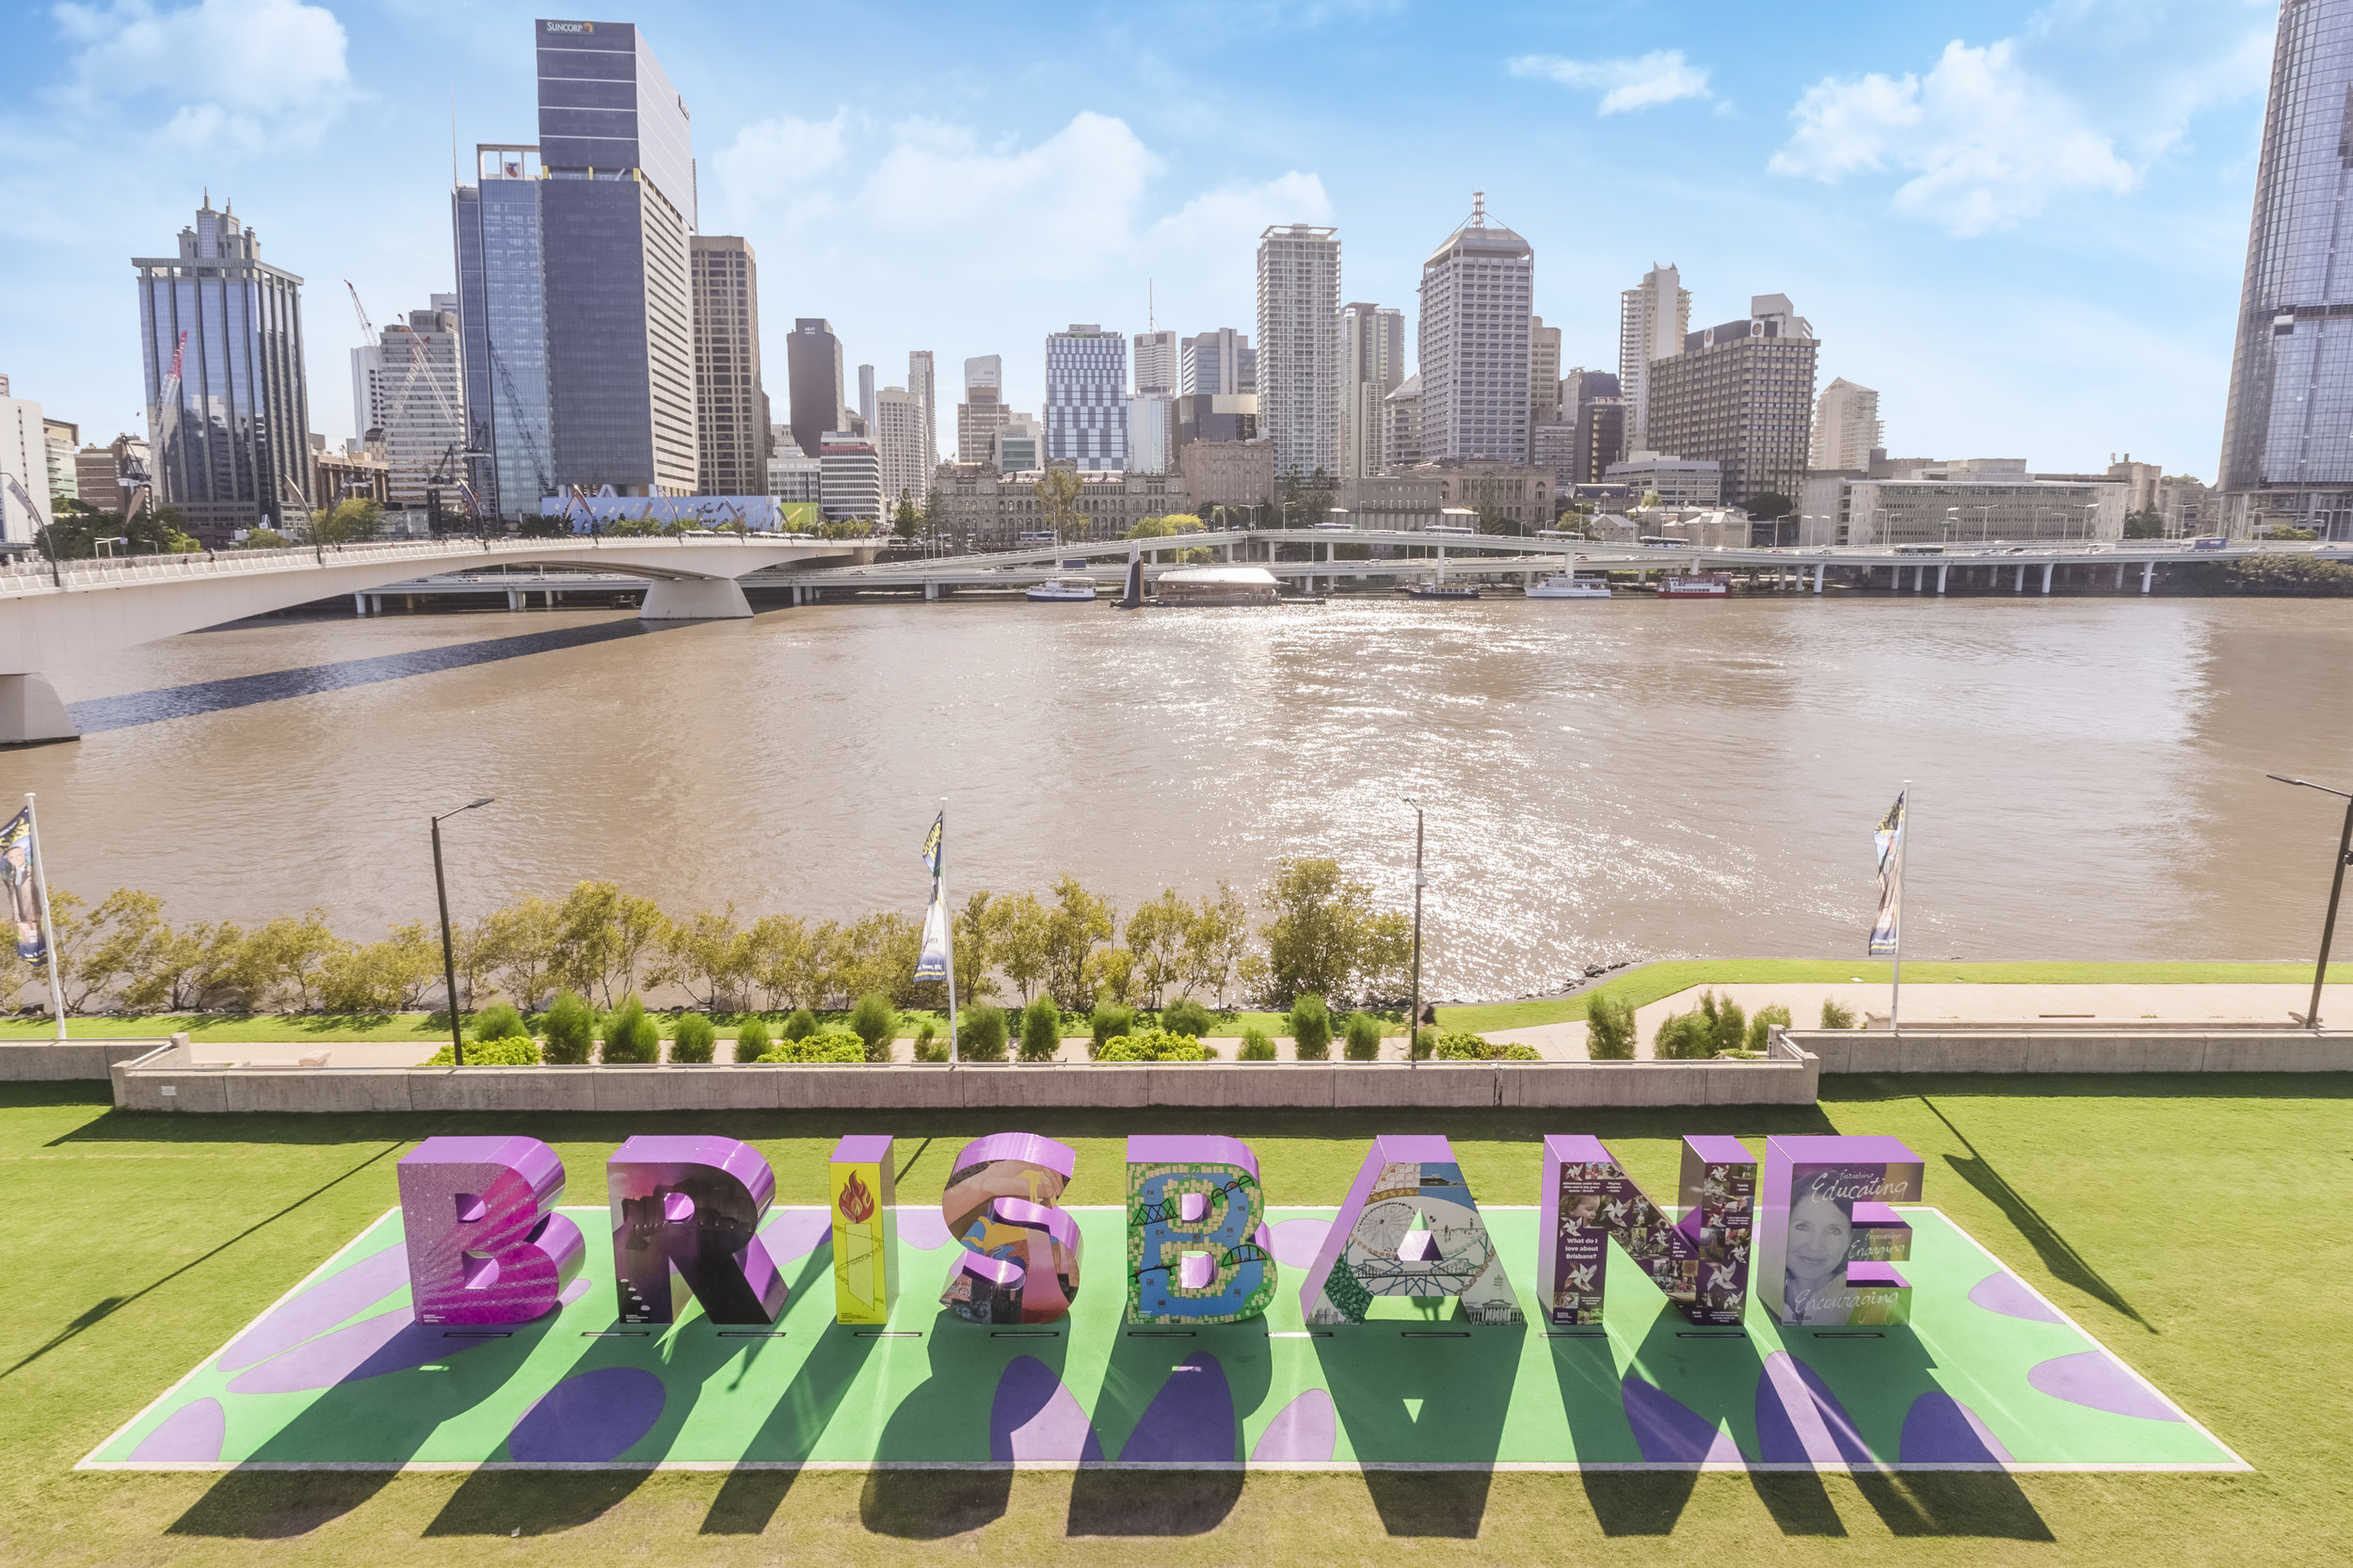 Image courtesy of  Tourism and Events Queensland .